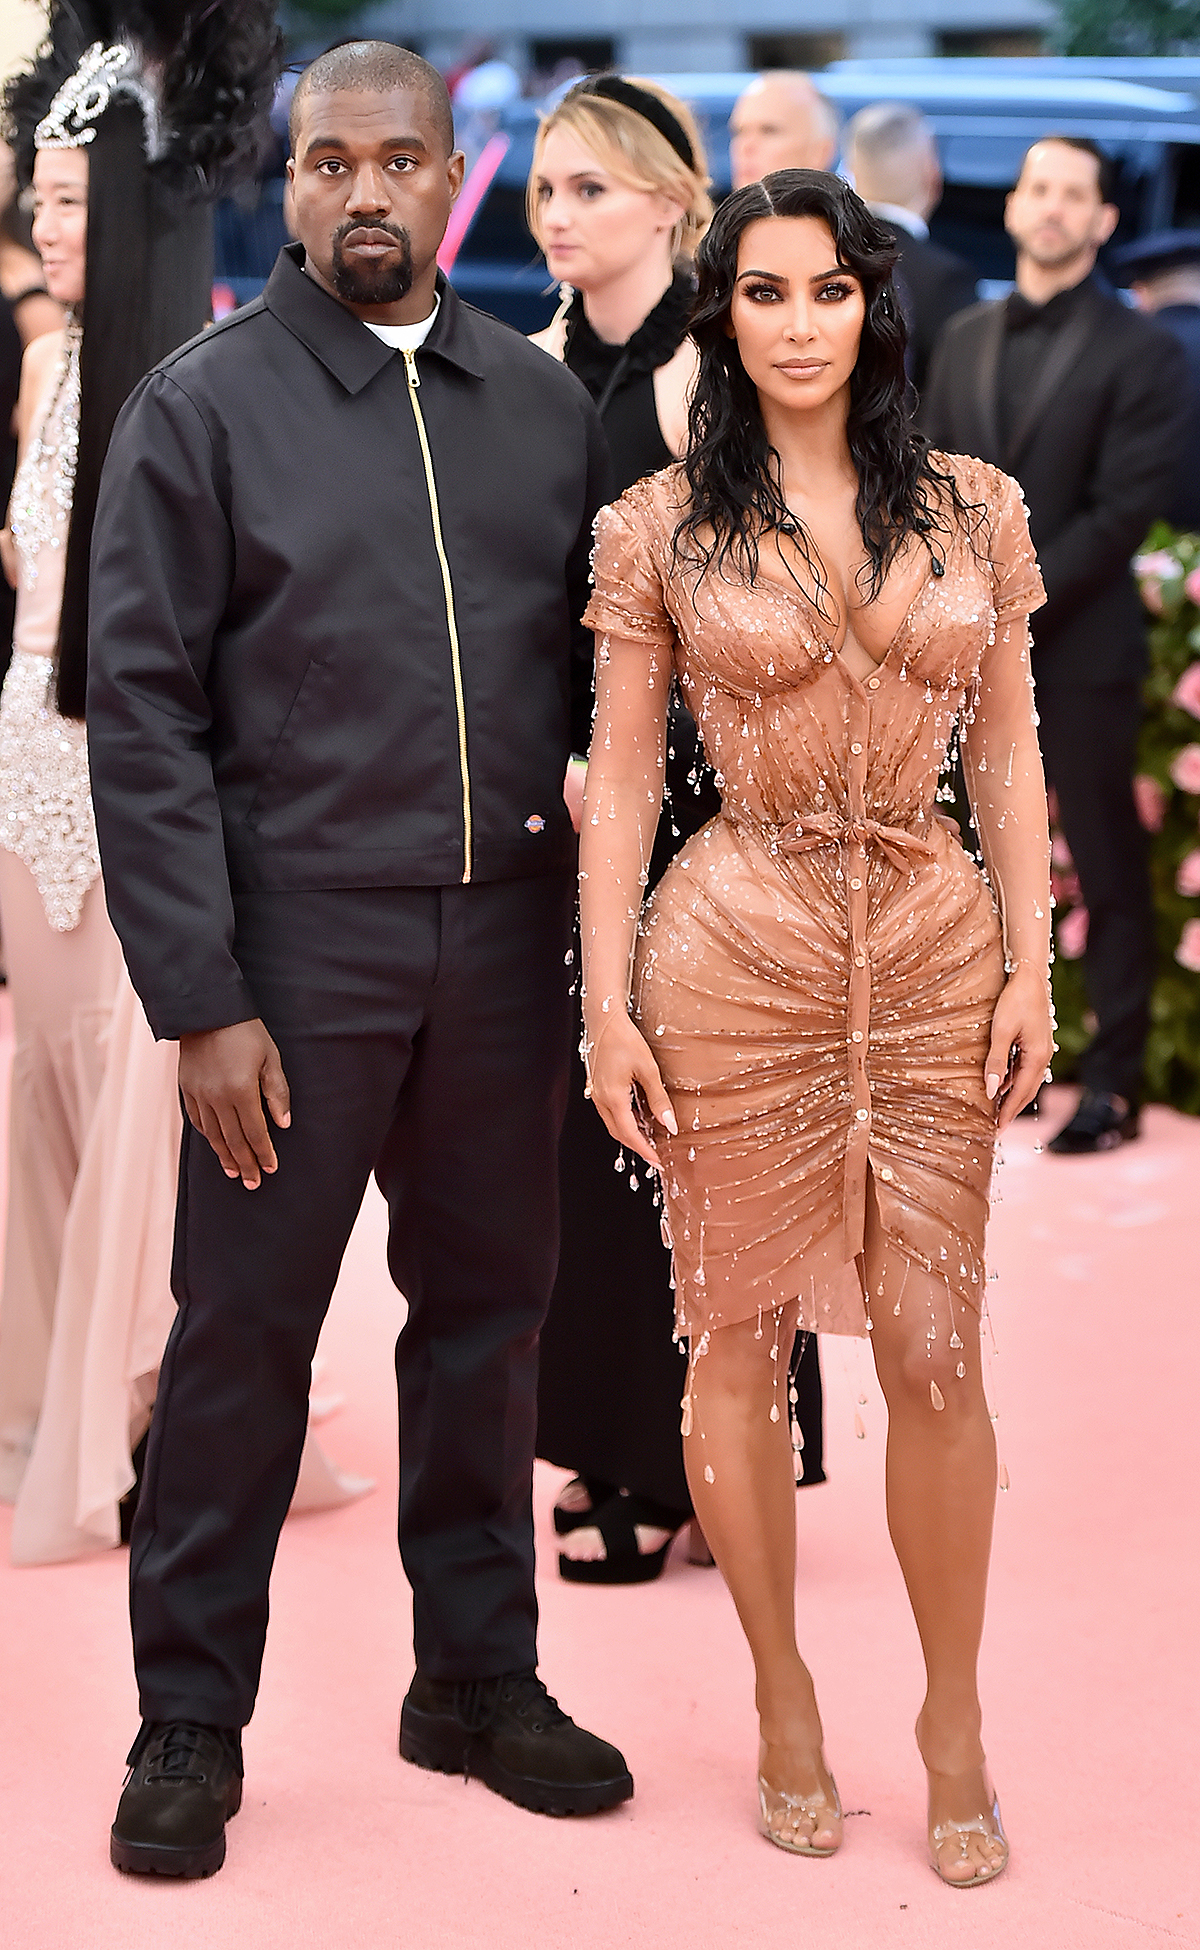 NEW YORK, NEW YORK - MAY 06: Kanye West and Kim Kardashian West attend The 2019 Met Gala Celebrating Camp: Notes on Fashion at Metropolitan Museum of Art on May 06, 2019 in New York City. (Photo by Theo Wargo/WireImage)